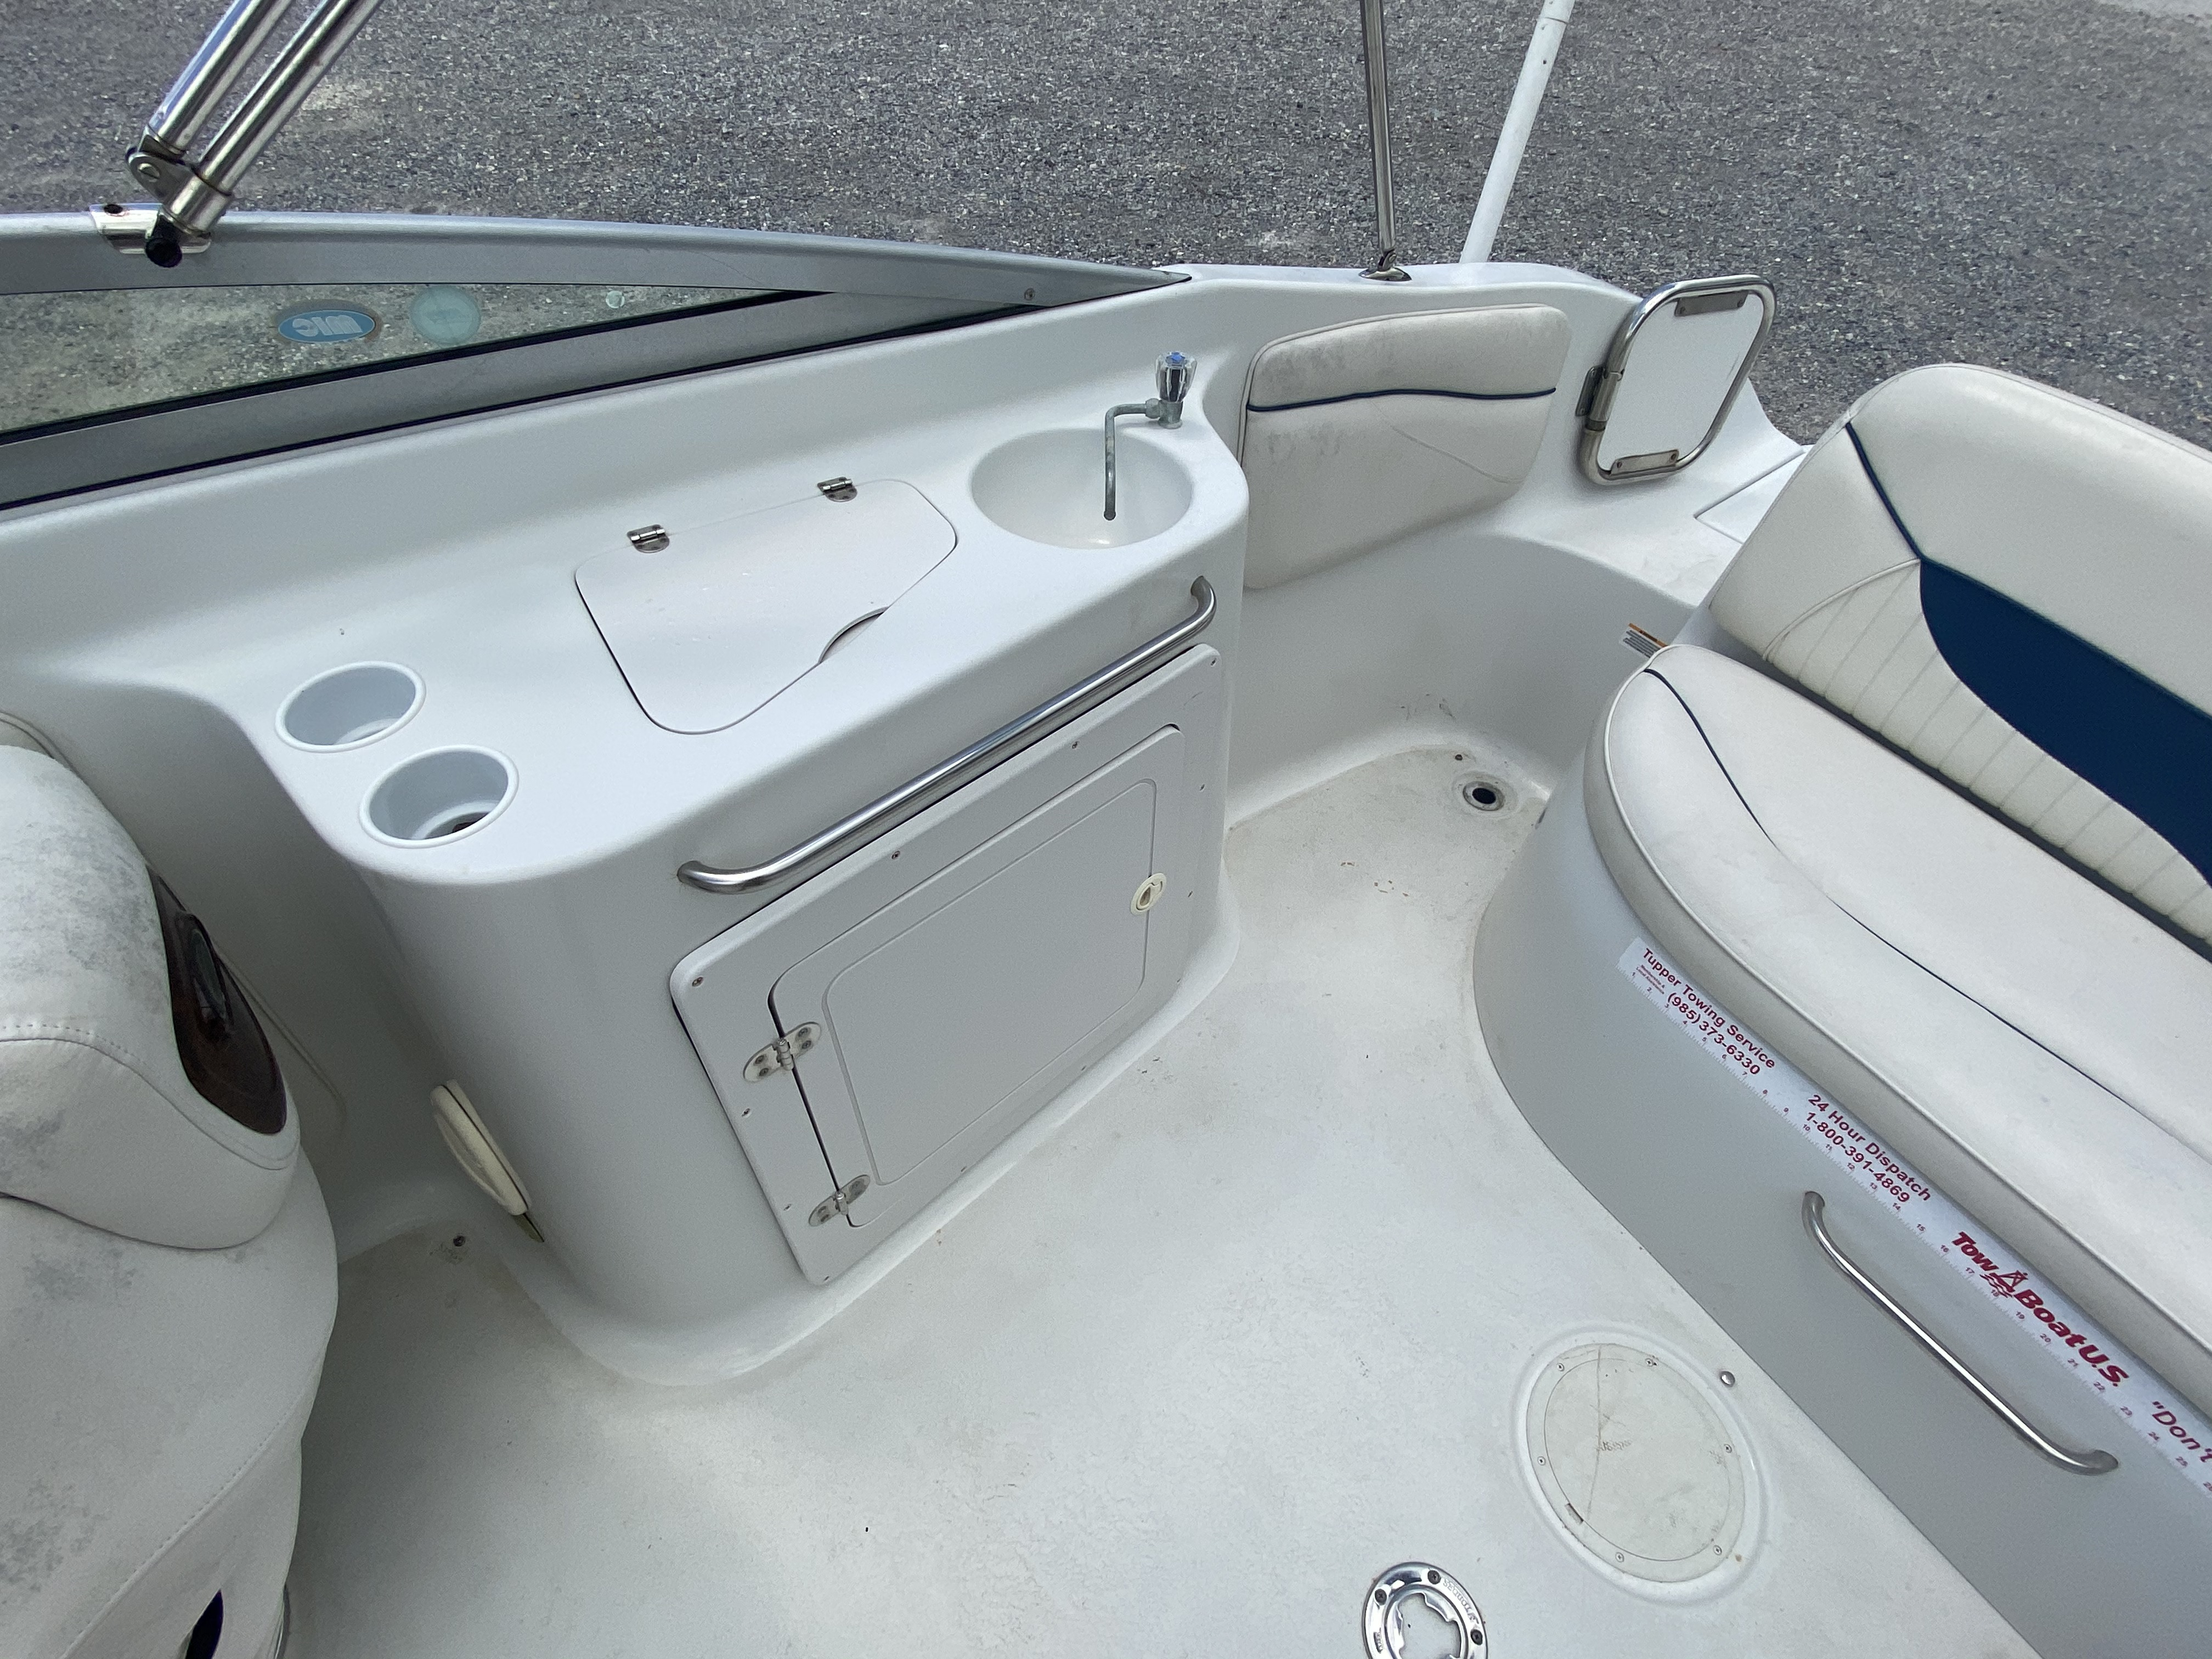 2005 Crownline boat for sale, model of the boat is 236 & Image # 3 of 17